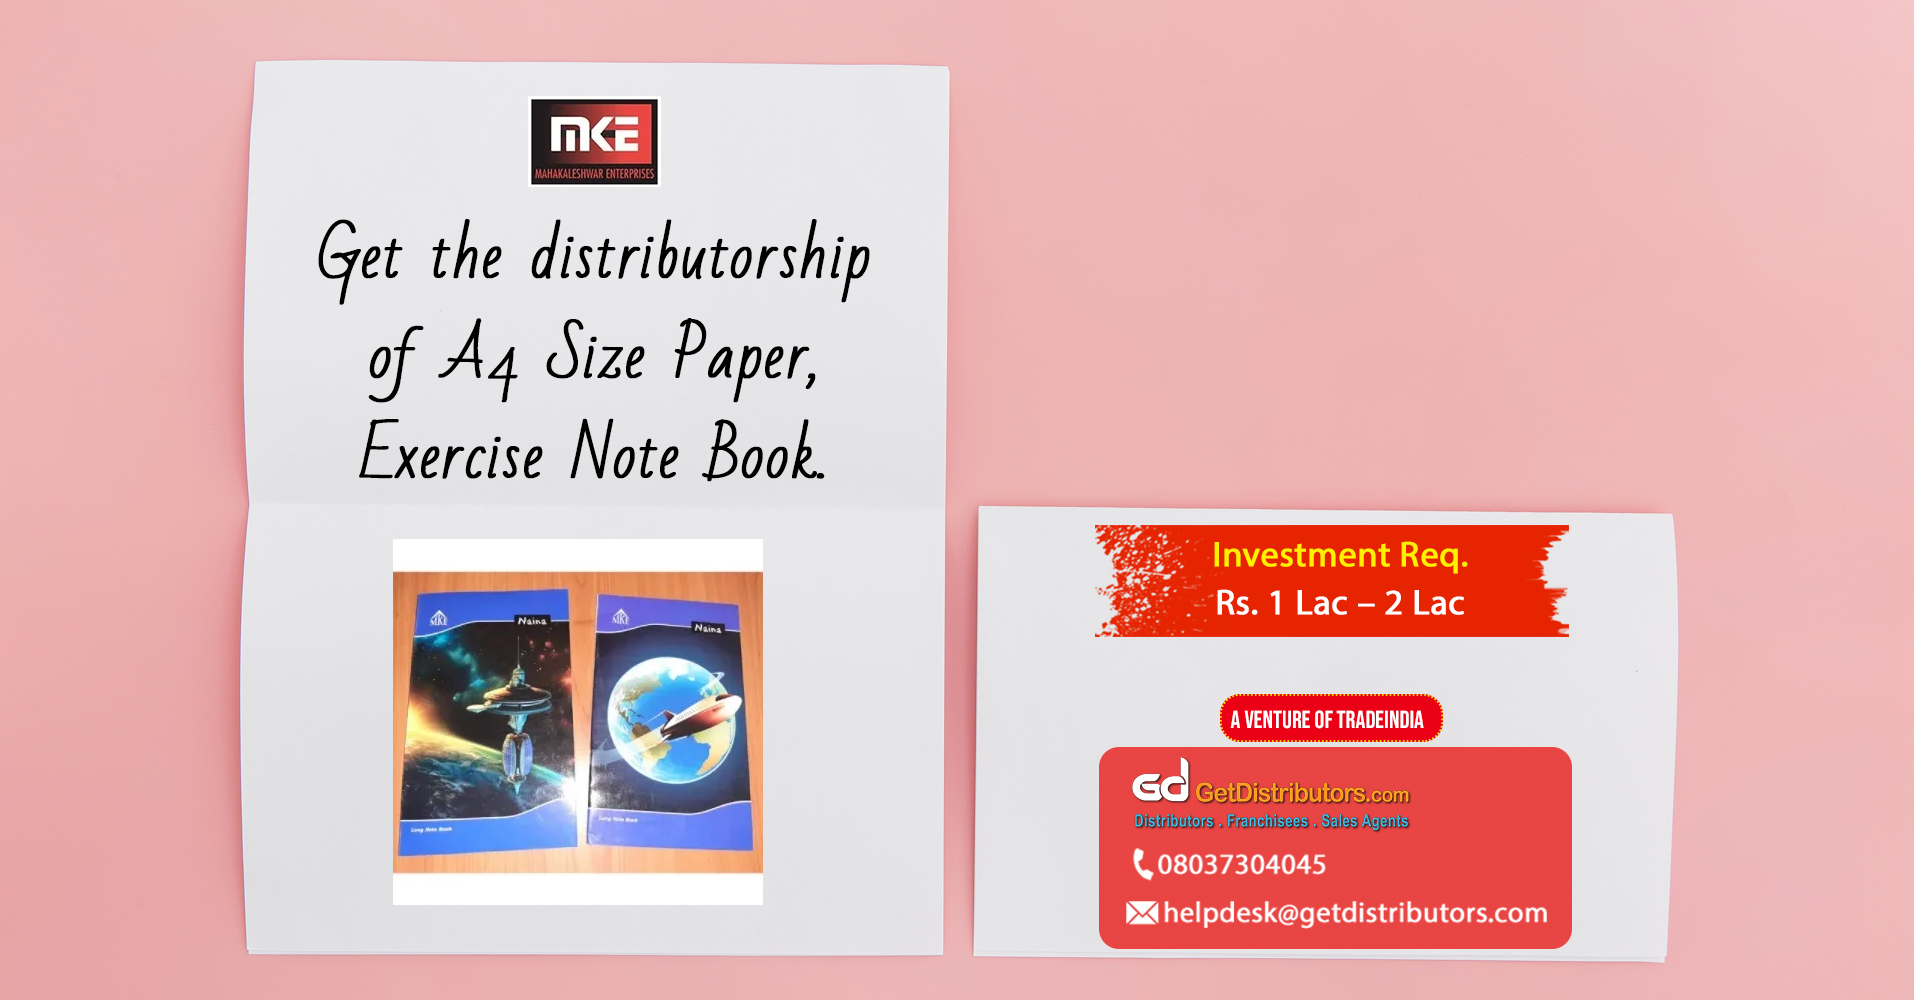 A wide range of notebooks for distribution